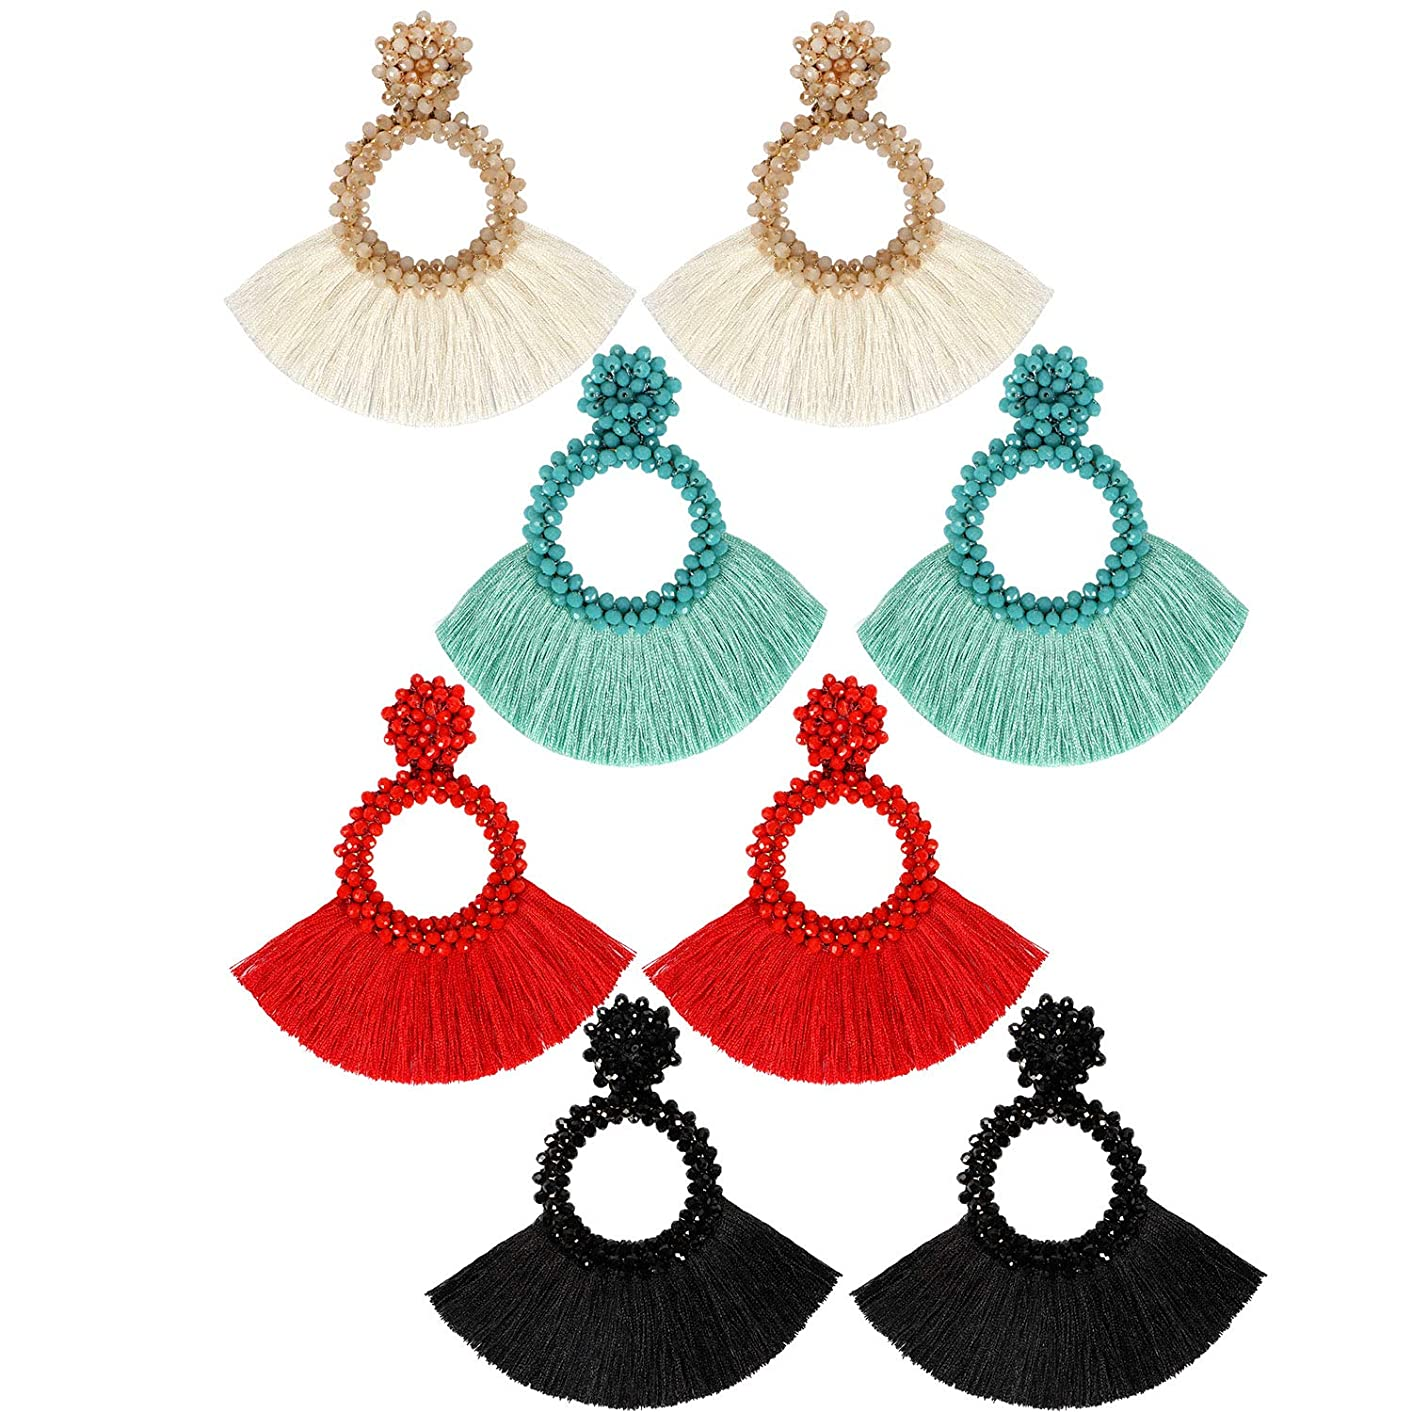 Bascolor Beaded Tassel Earrings for Women Hoop Fringe Boho Lightweight Statement Drop Dangle Earrings for Lady Girls Jewelry